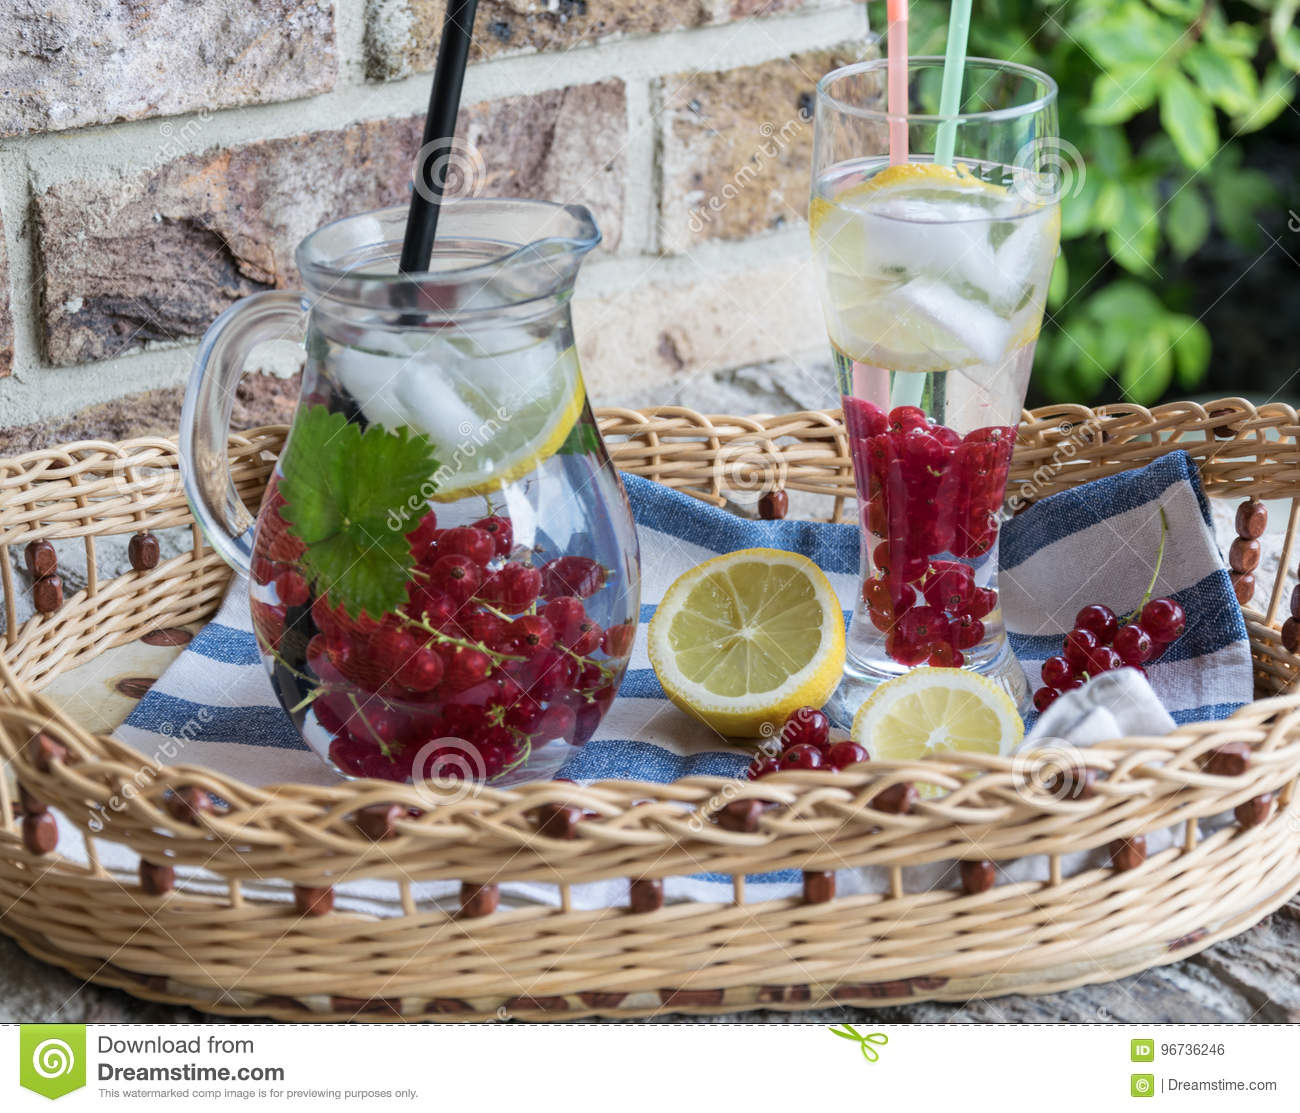 Home-made refreshing lemonade of red currant with ice and lemon